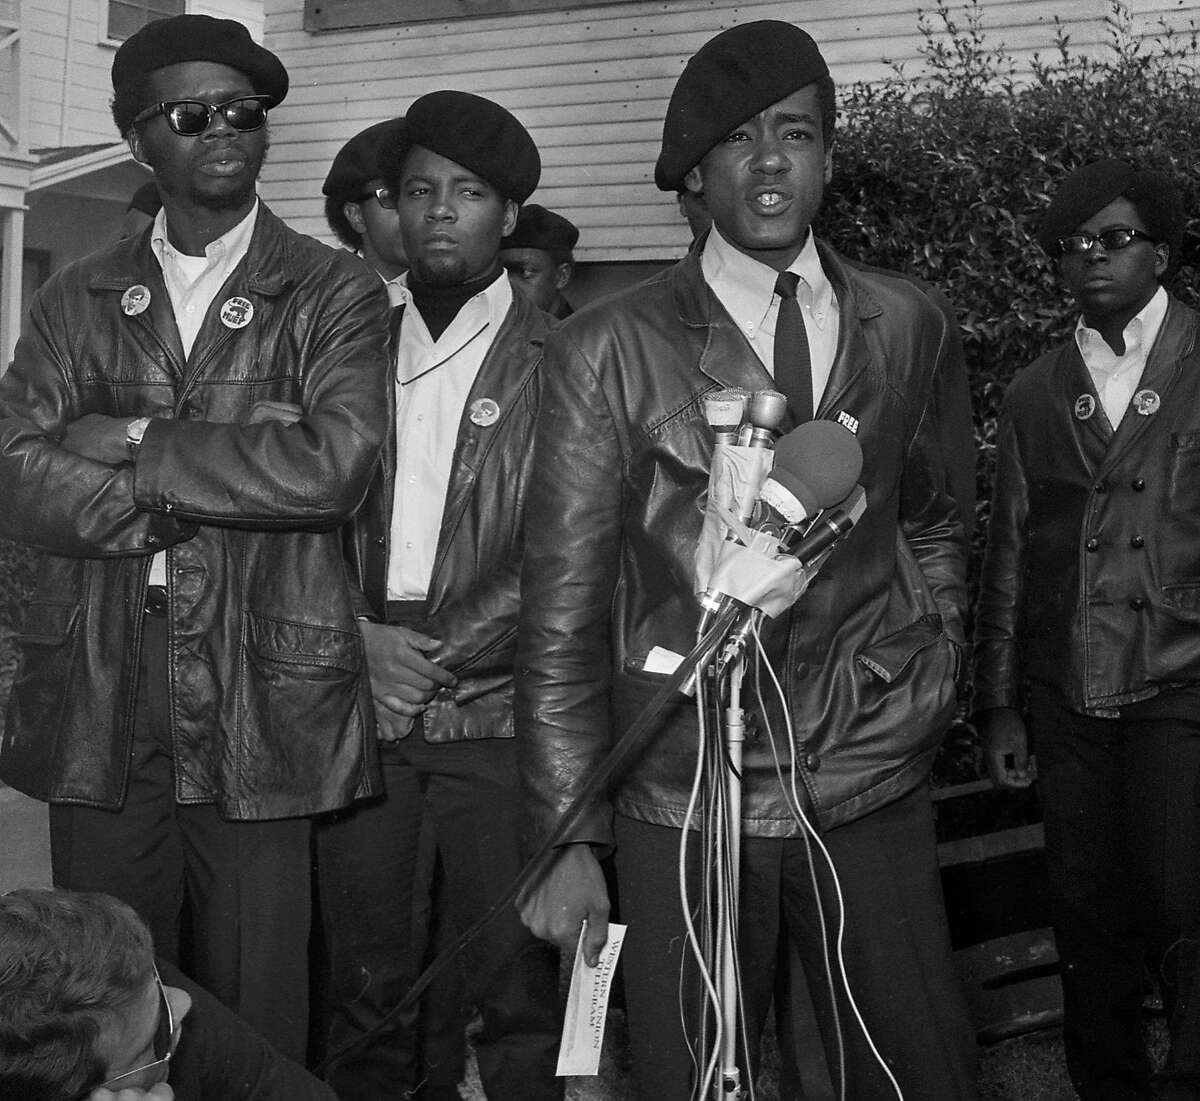 The funeral of Black Panther Bobby Hutton 04/17/1968